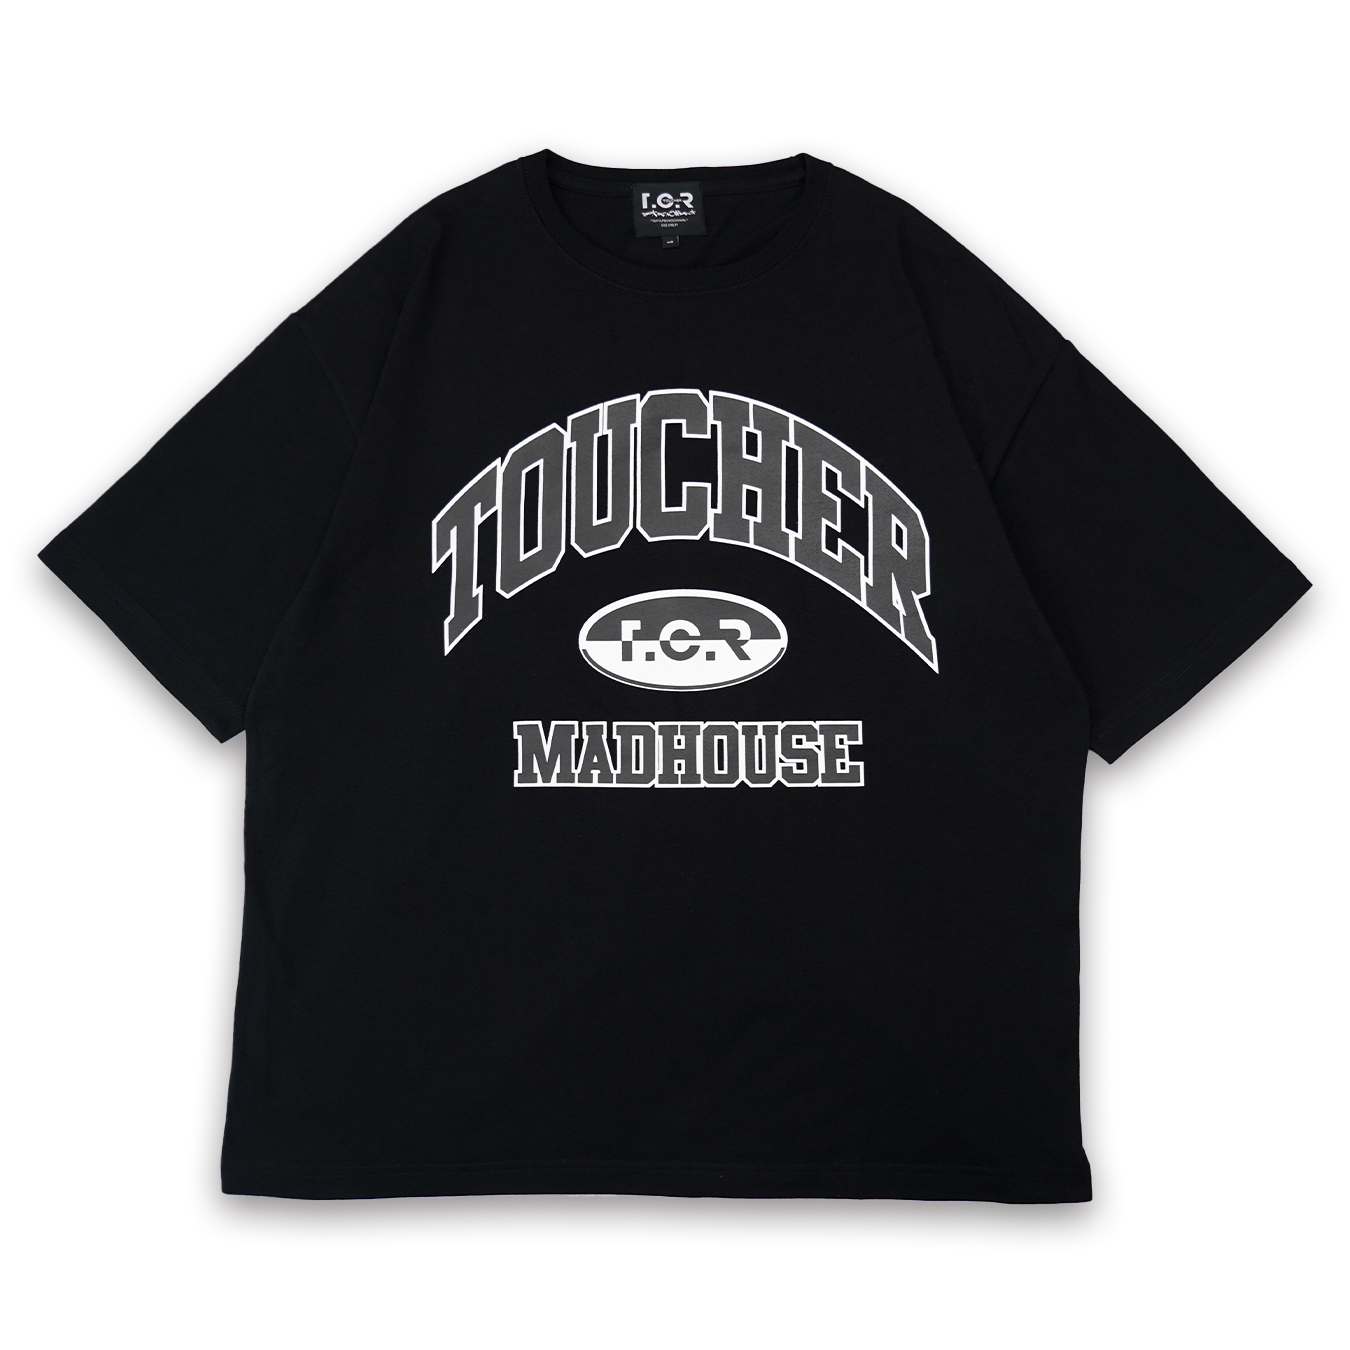 T.C.R MADHOUSE S/S TEE - BLACK / WHITE